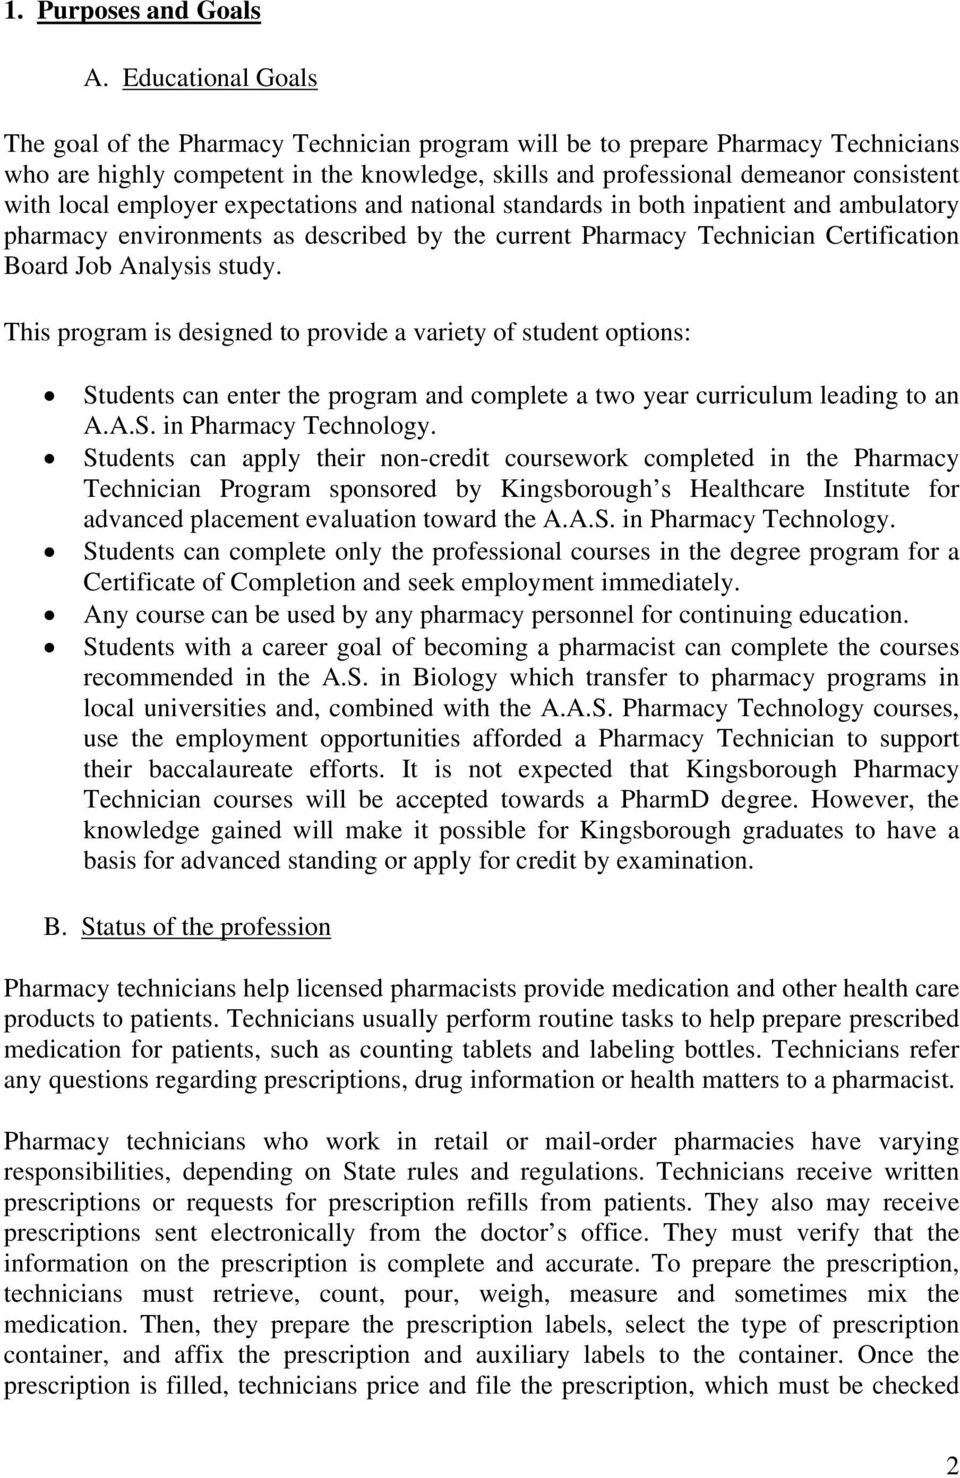 employer expectations and national standards in both inpatient and ambulatory pharmacy environments as described by the current Pharmacy Technician Certification Board Job Analysis study.